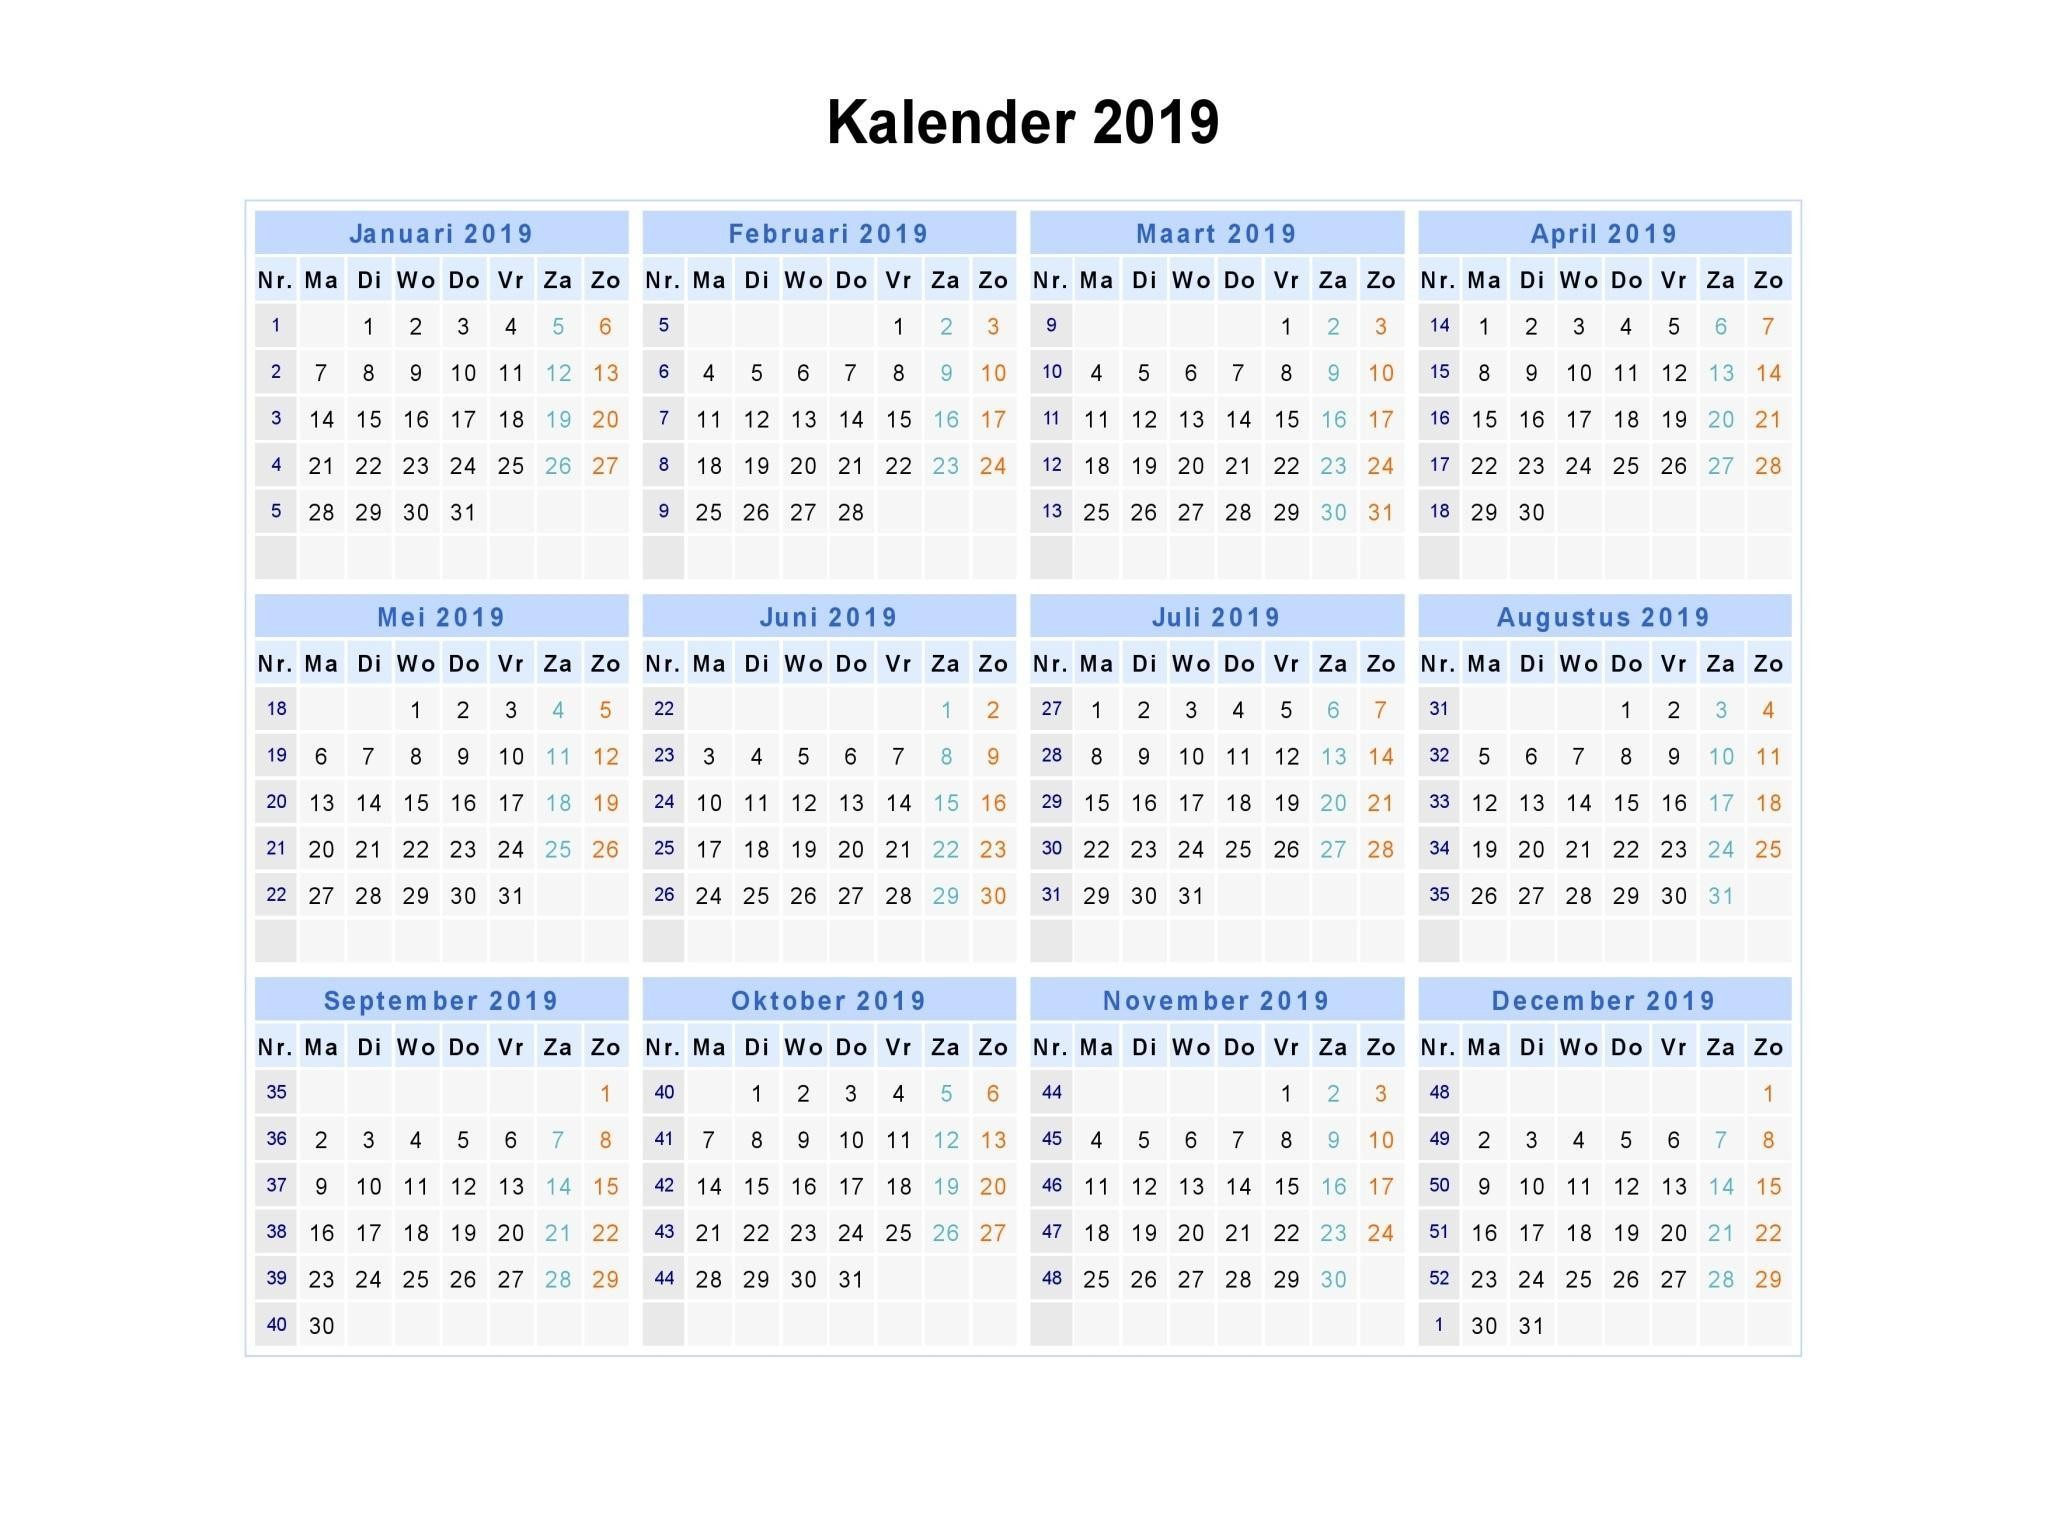 2019 March Calendar Kalnirnay Actual Kalendar Kuda July 2017 Of 2019 March Calendar Kalnirnay Más Actual August 2106 Calendar Lara Expolicenciaslatam